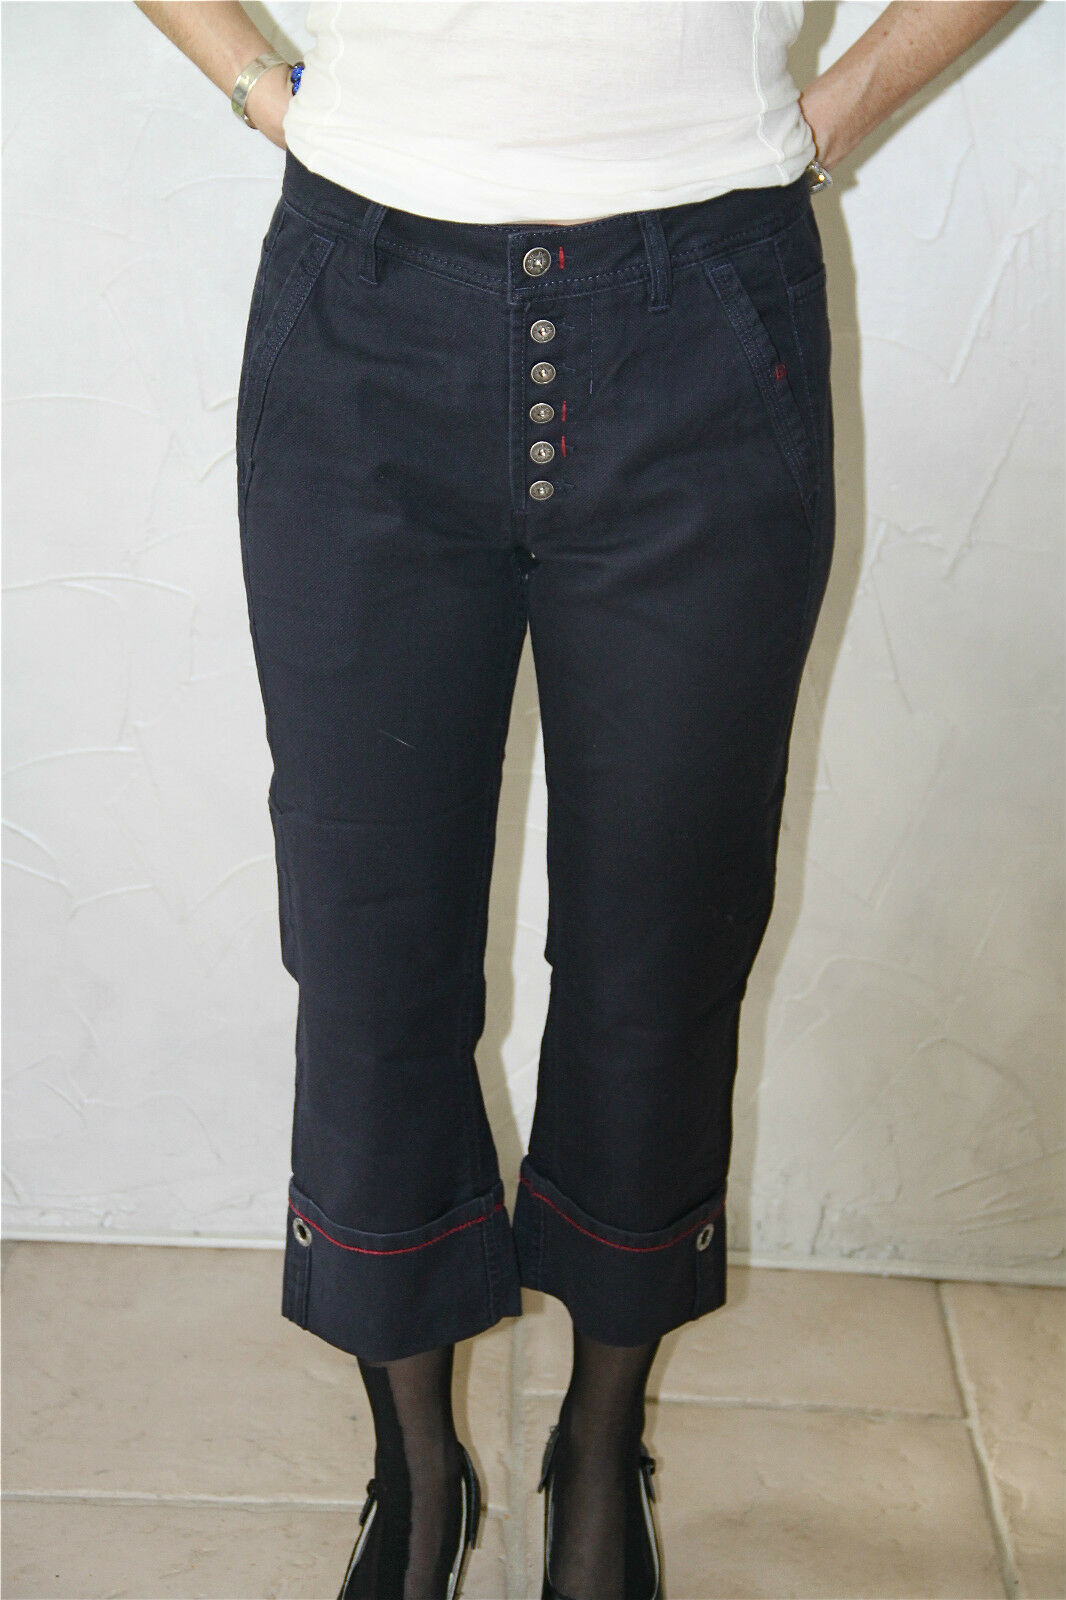 Pantacourt jeans denim M&F GIRBAUD next boyfriend T 36 (26) NEUF ÉTIQUETTE